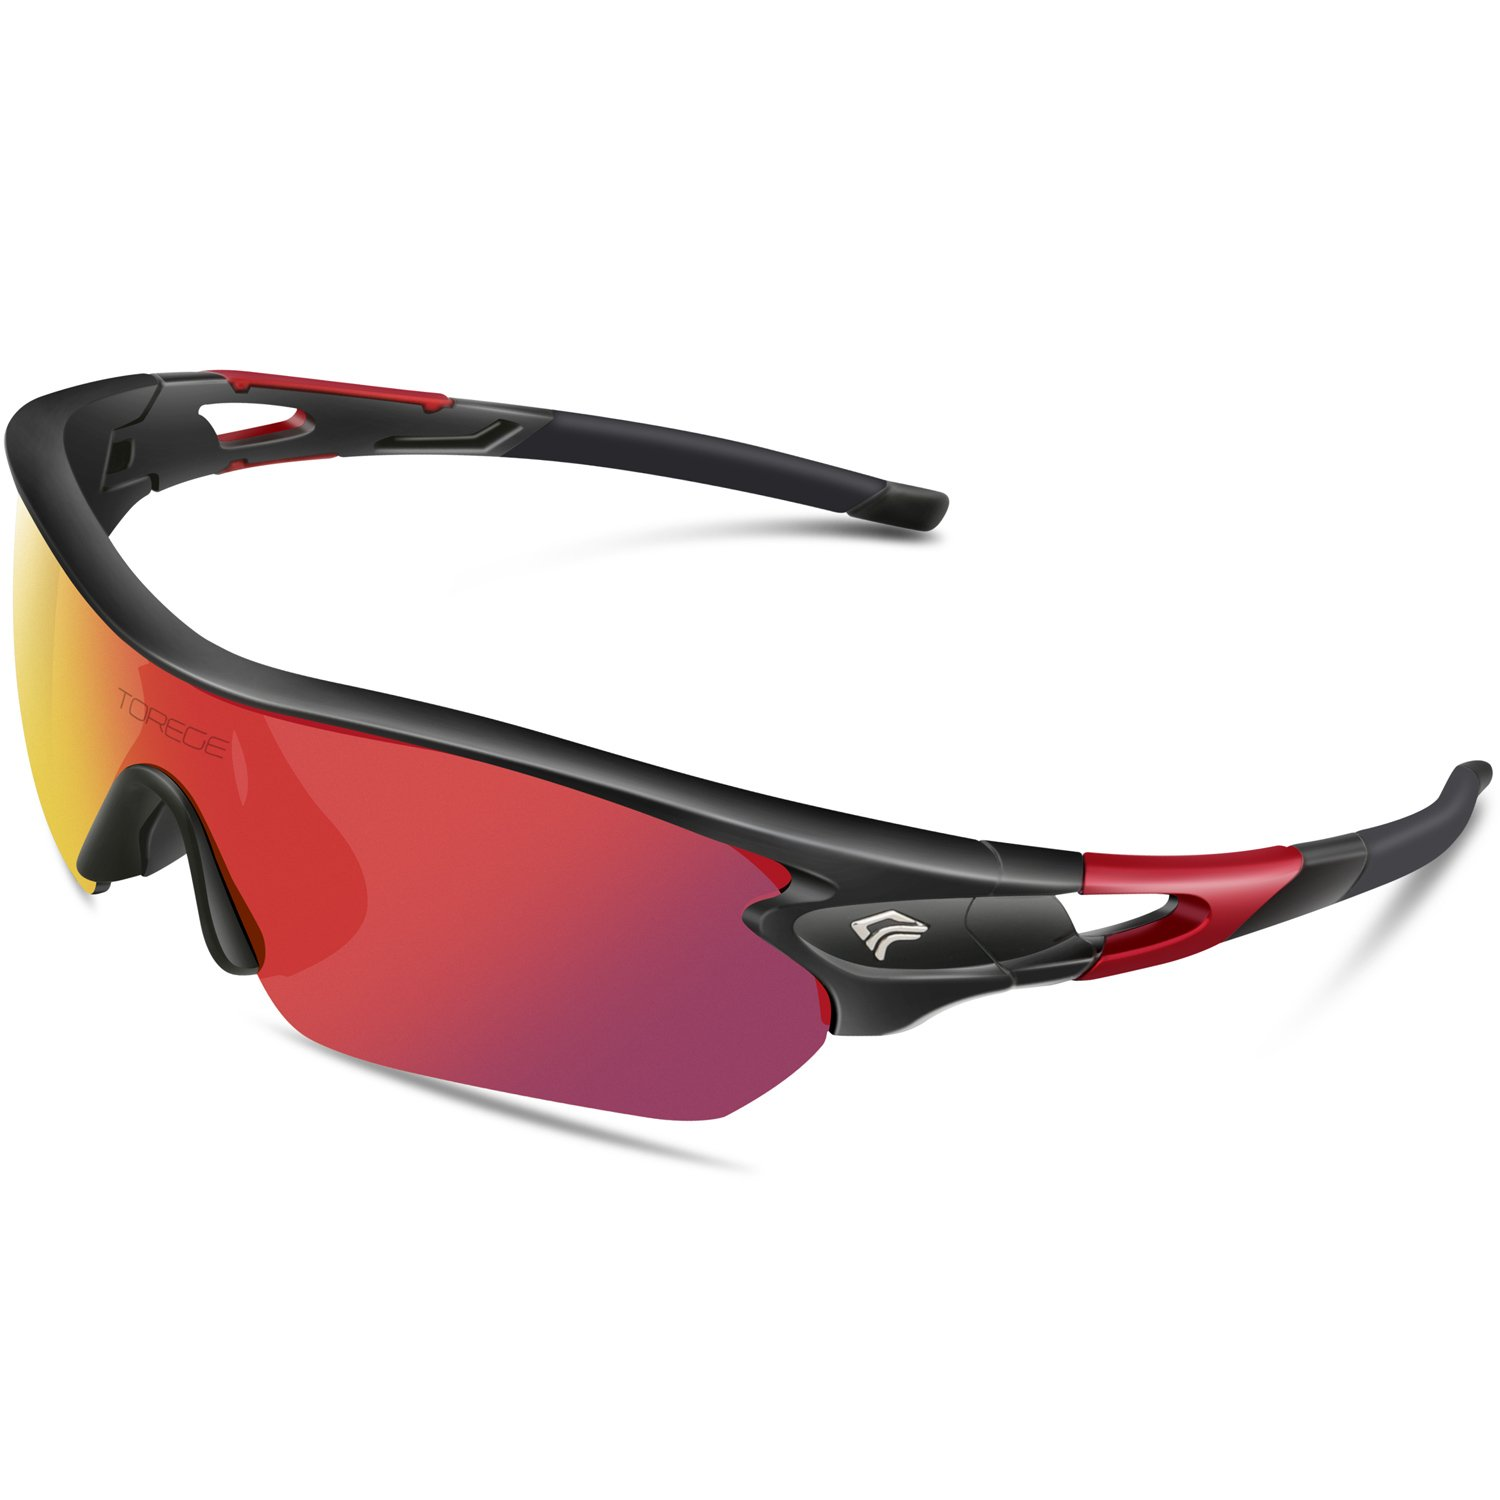 Amazon.com: TOREGE Polarized Sports Sunglasses With 5 ...